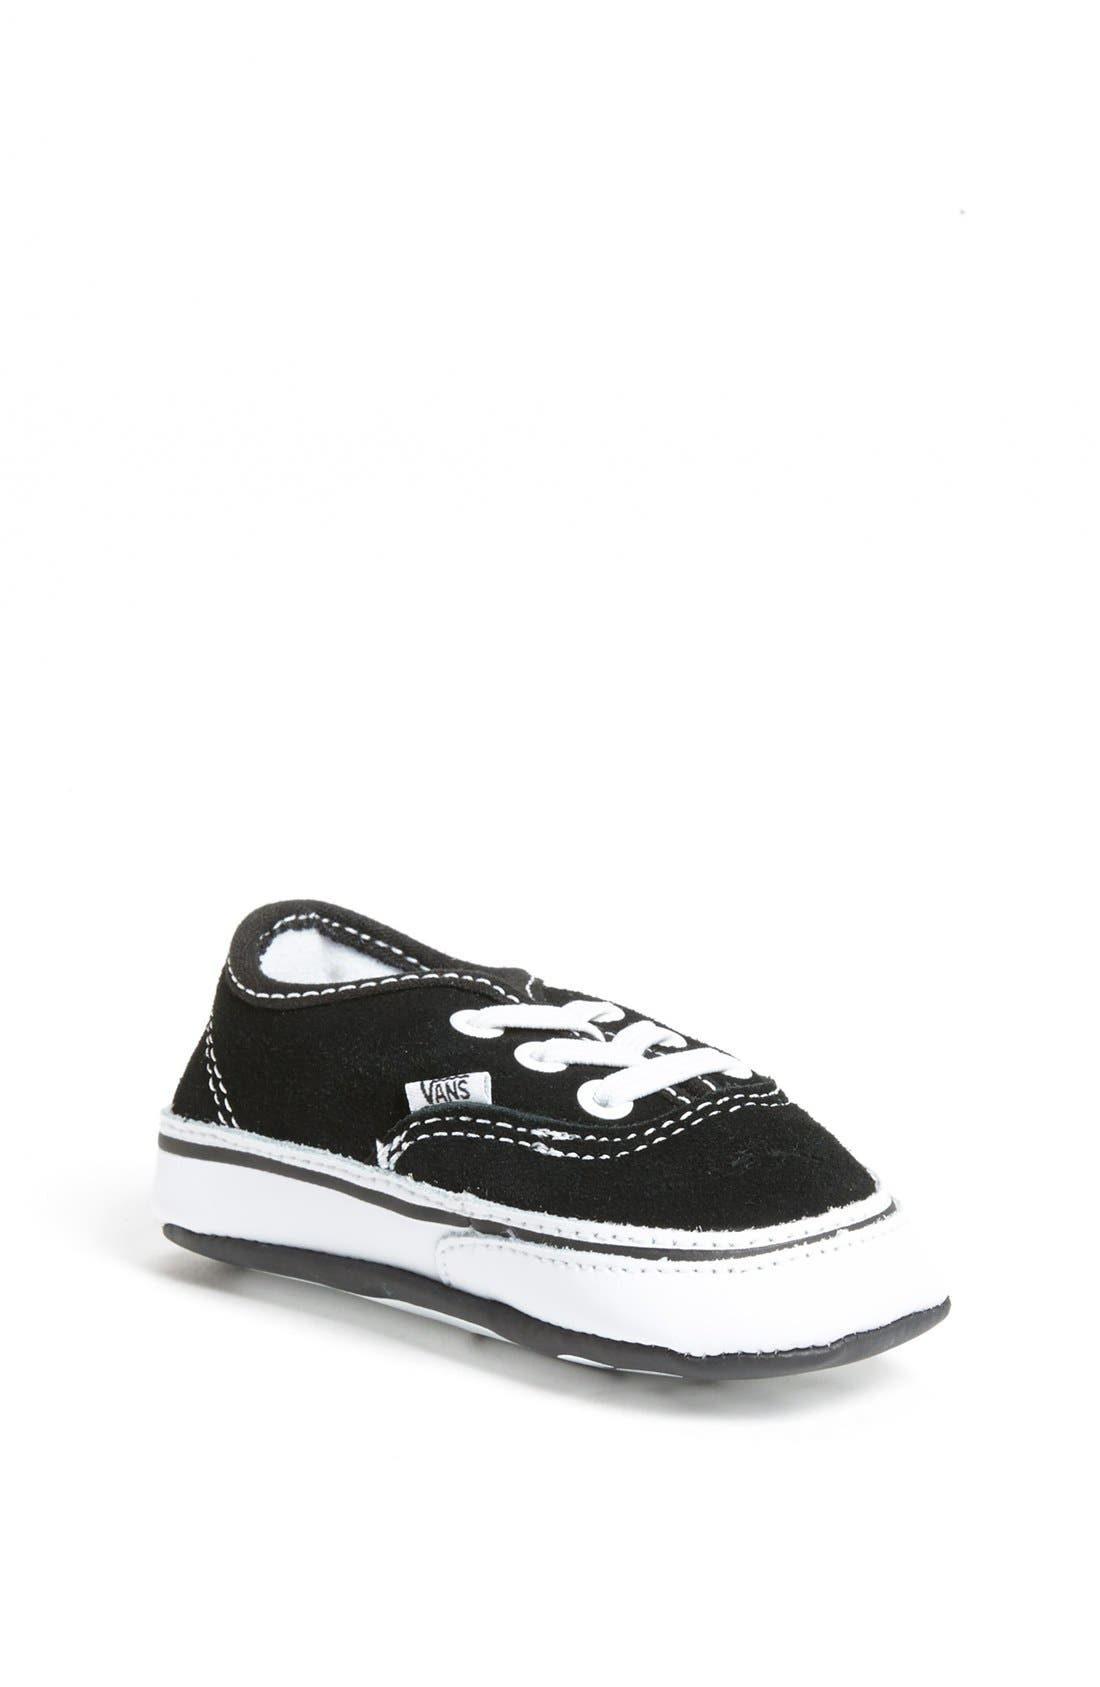 Alternate Image 1 Selected - Vans 'Authentic' Crib Shoe (Baby)